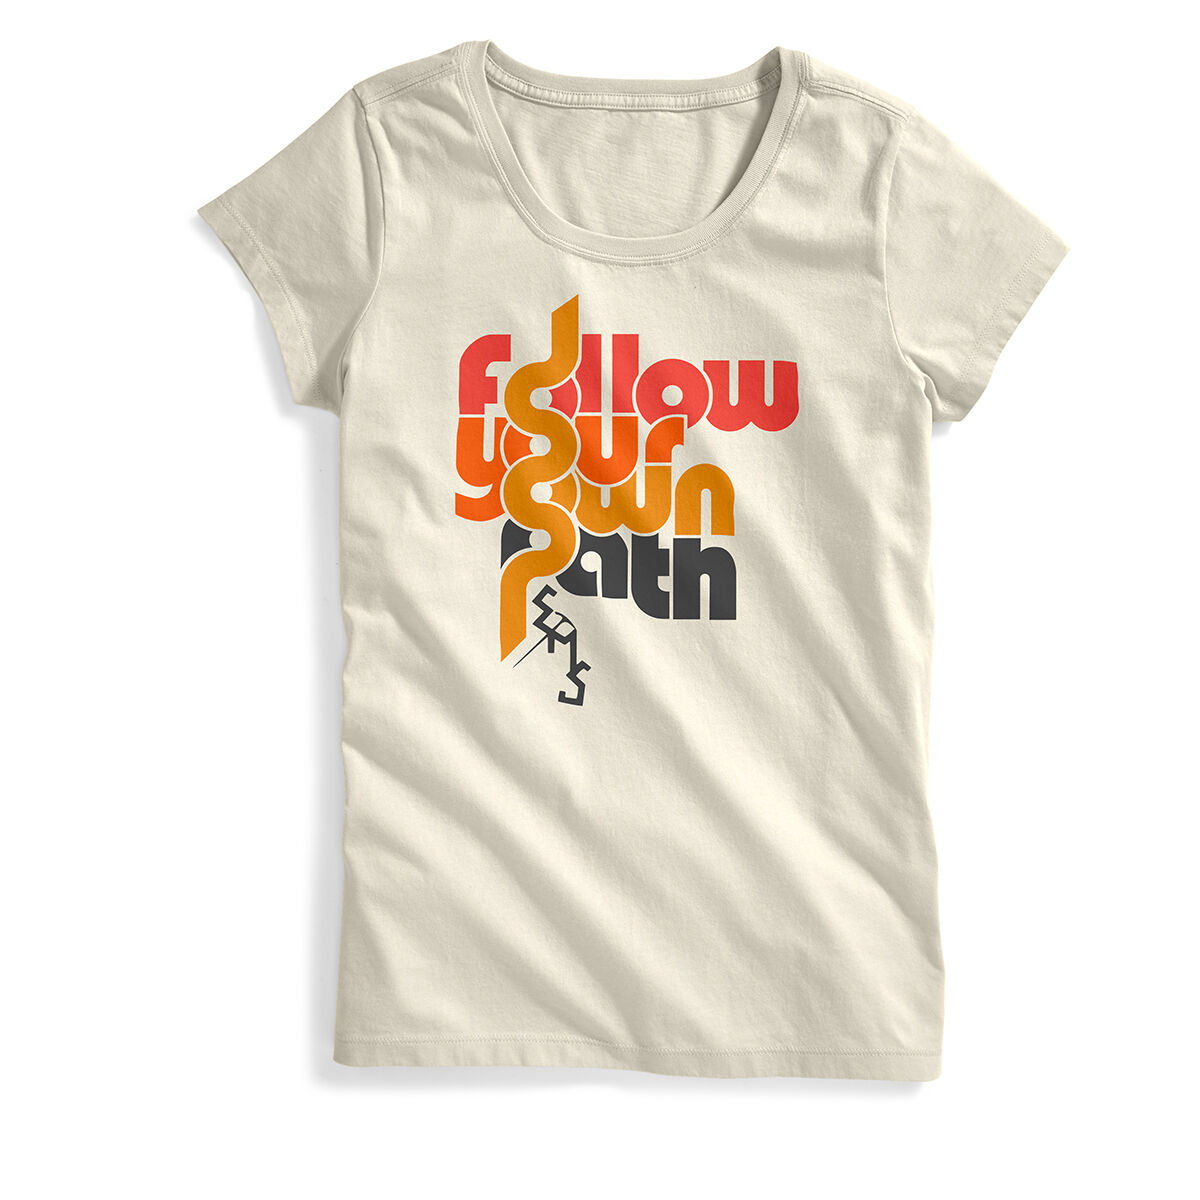 Ems Women's Follow Your Own Path Short-Sleeve Graphic Tee - White, S